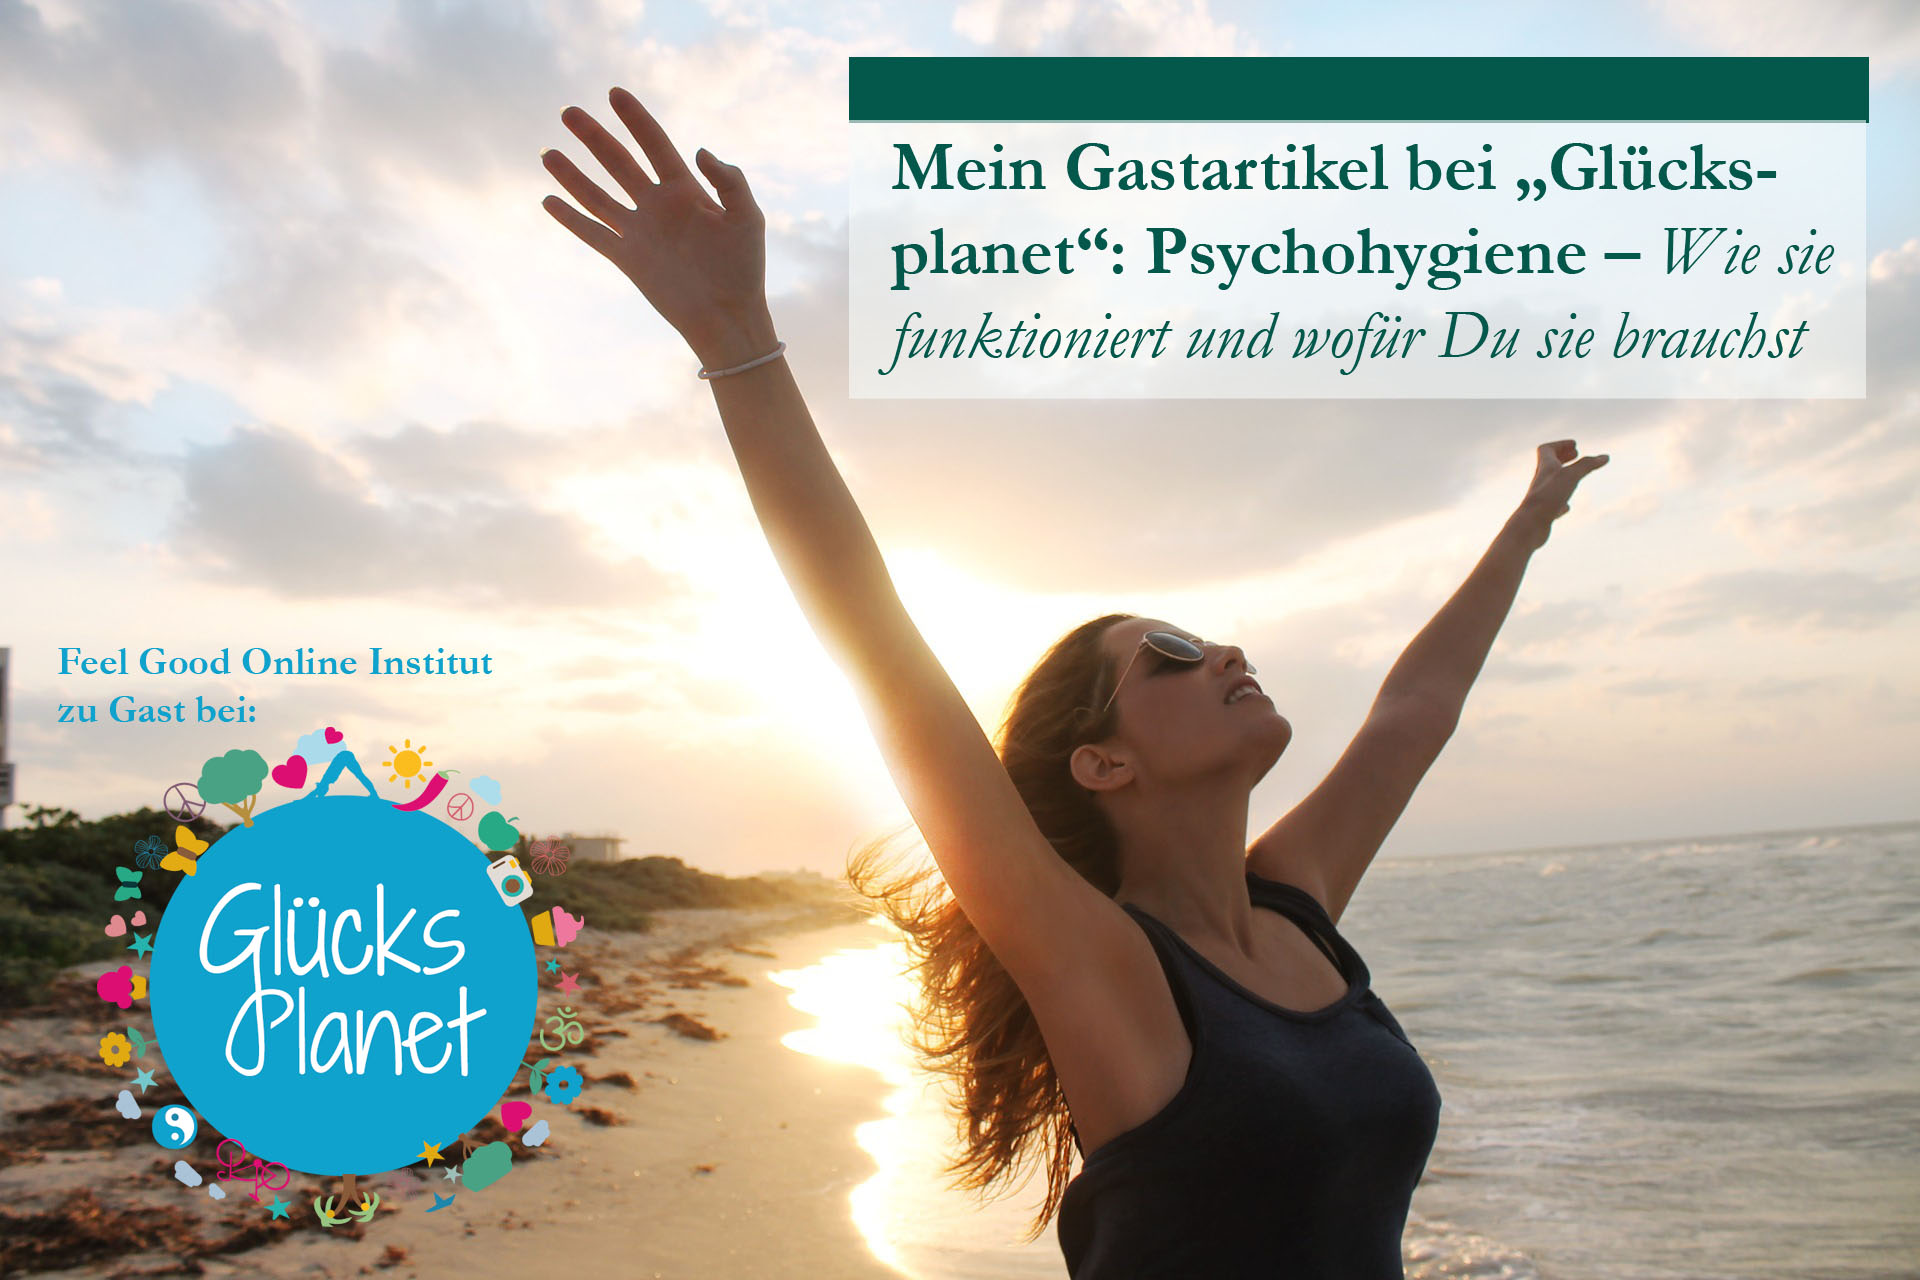 Christin Prizelius, Silja Mahlow, Wirtschaftspsychologie, Feel Good